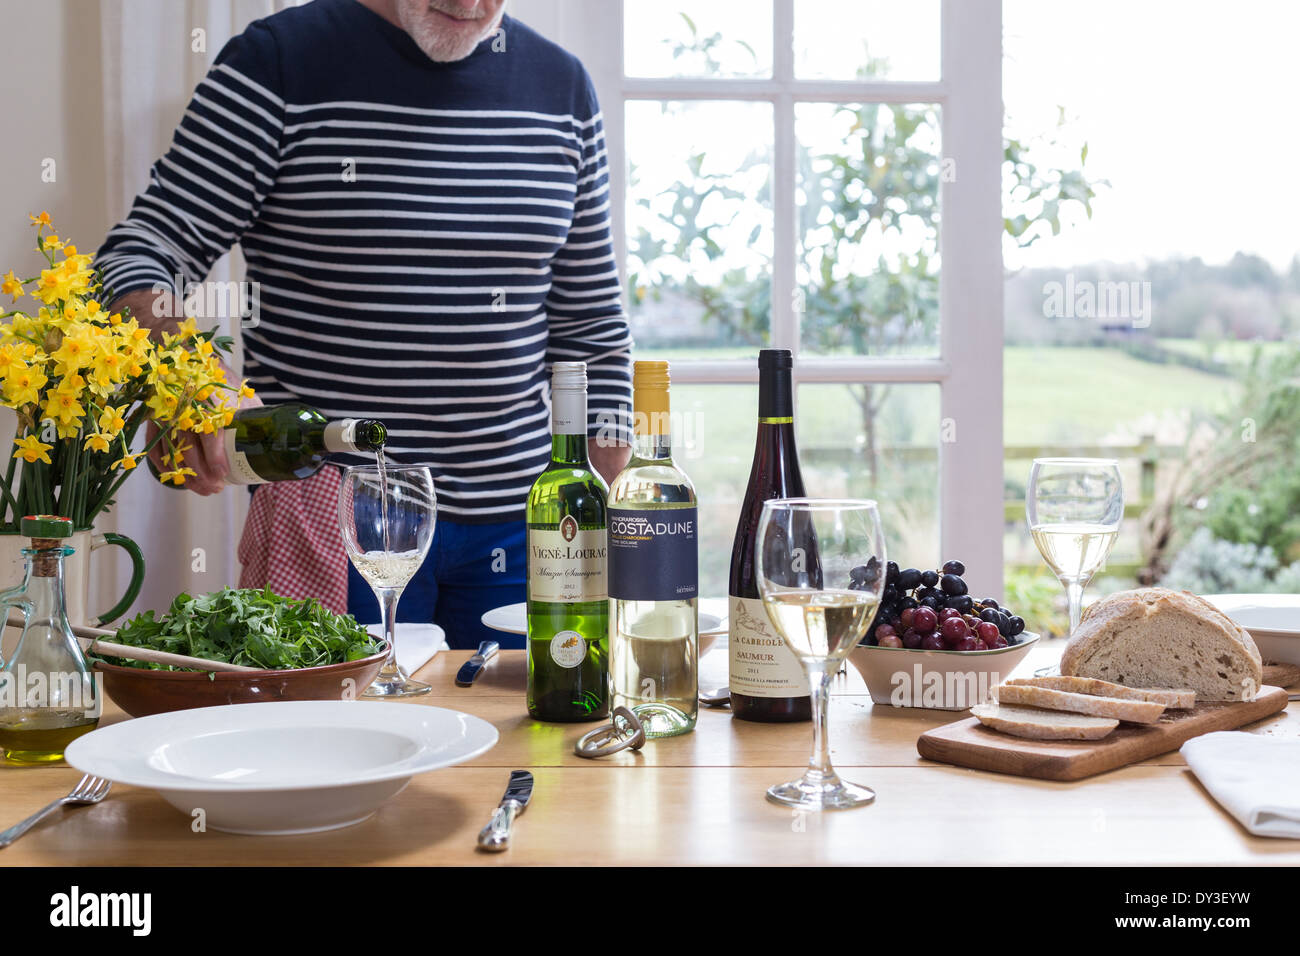 man pours wine at lunch time tasting session - Stock Image